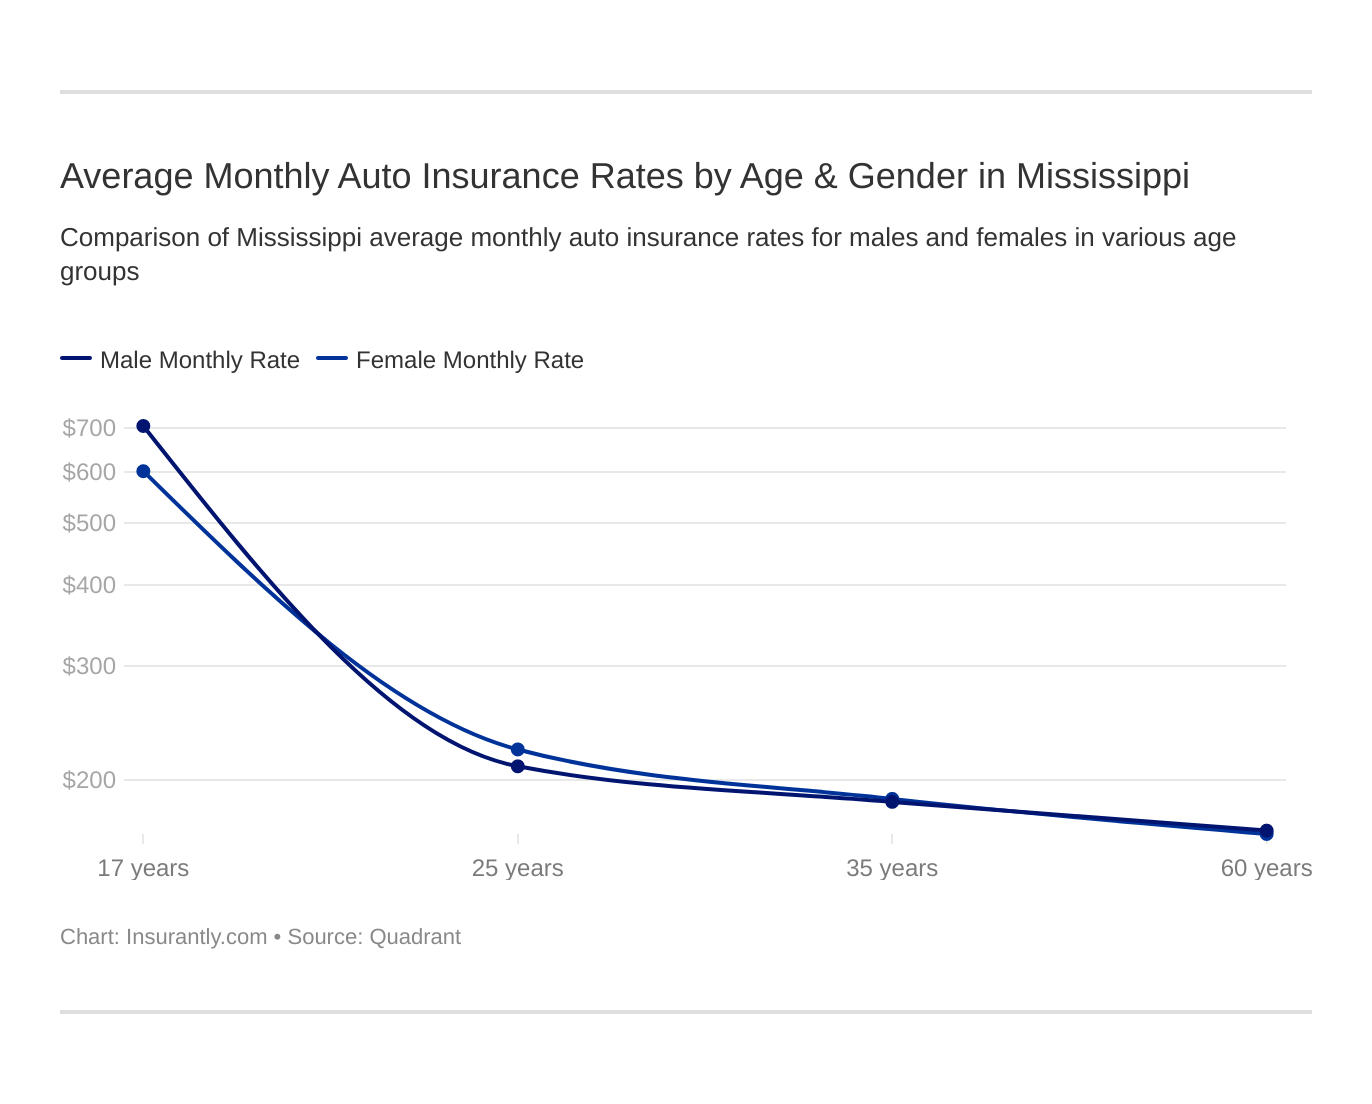 Average Monthly Auto Insurance Rates by Age & Gender in Mississippi